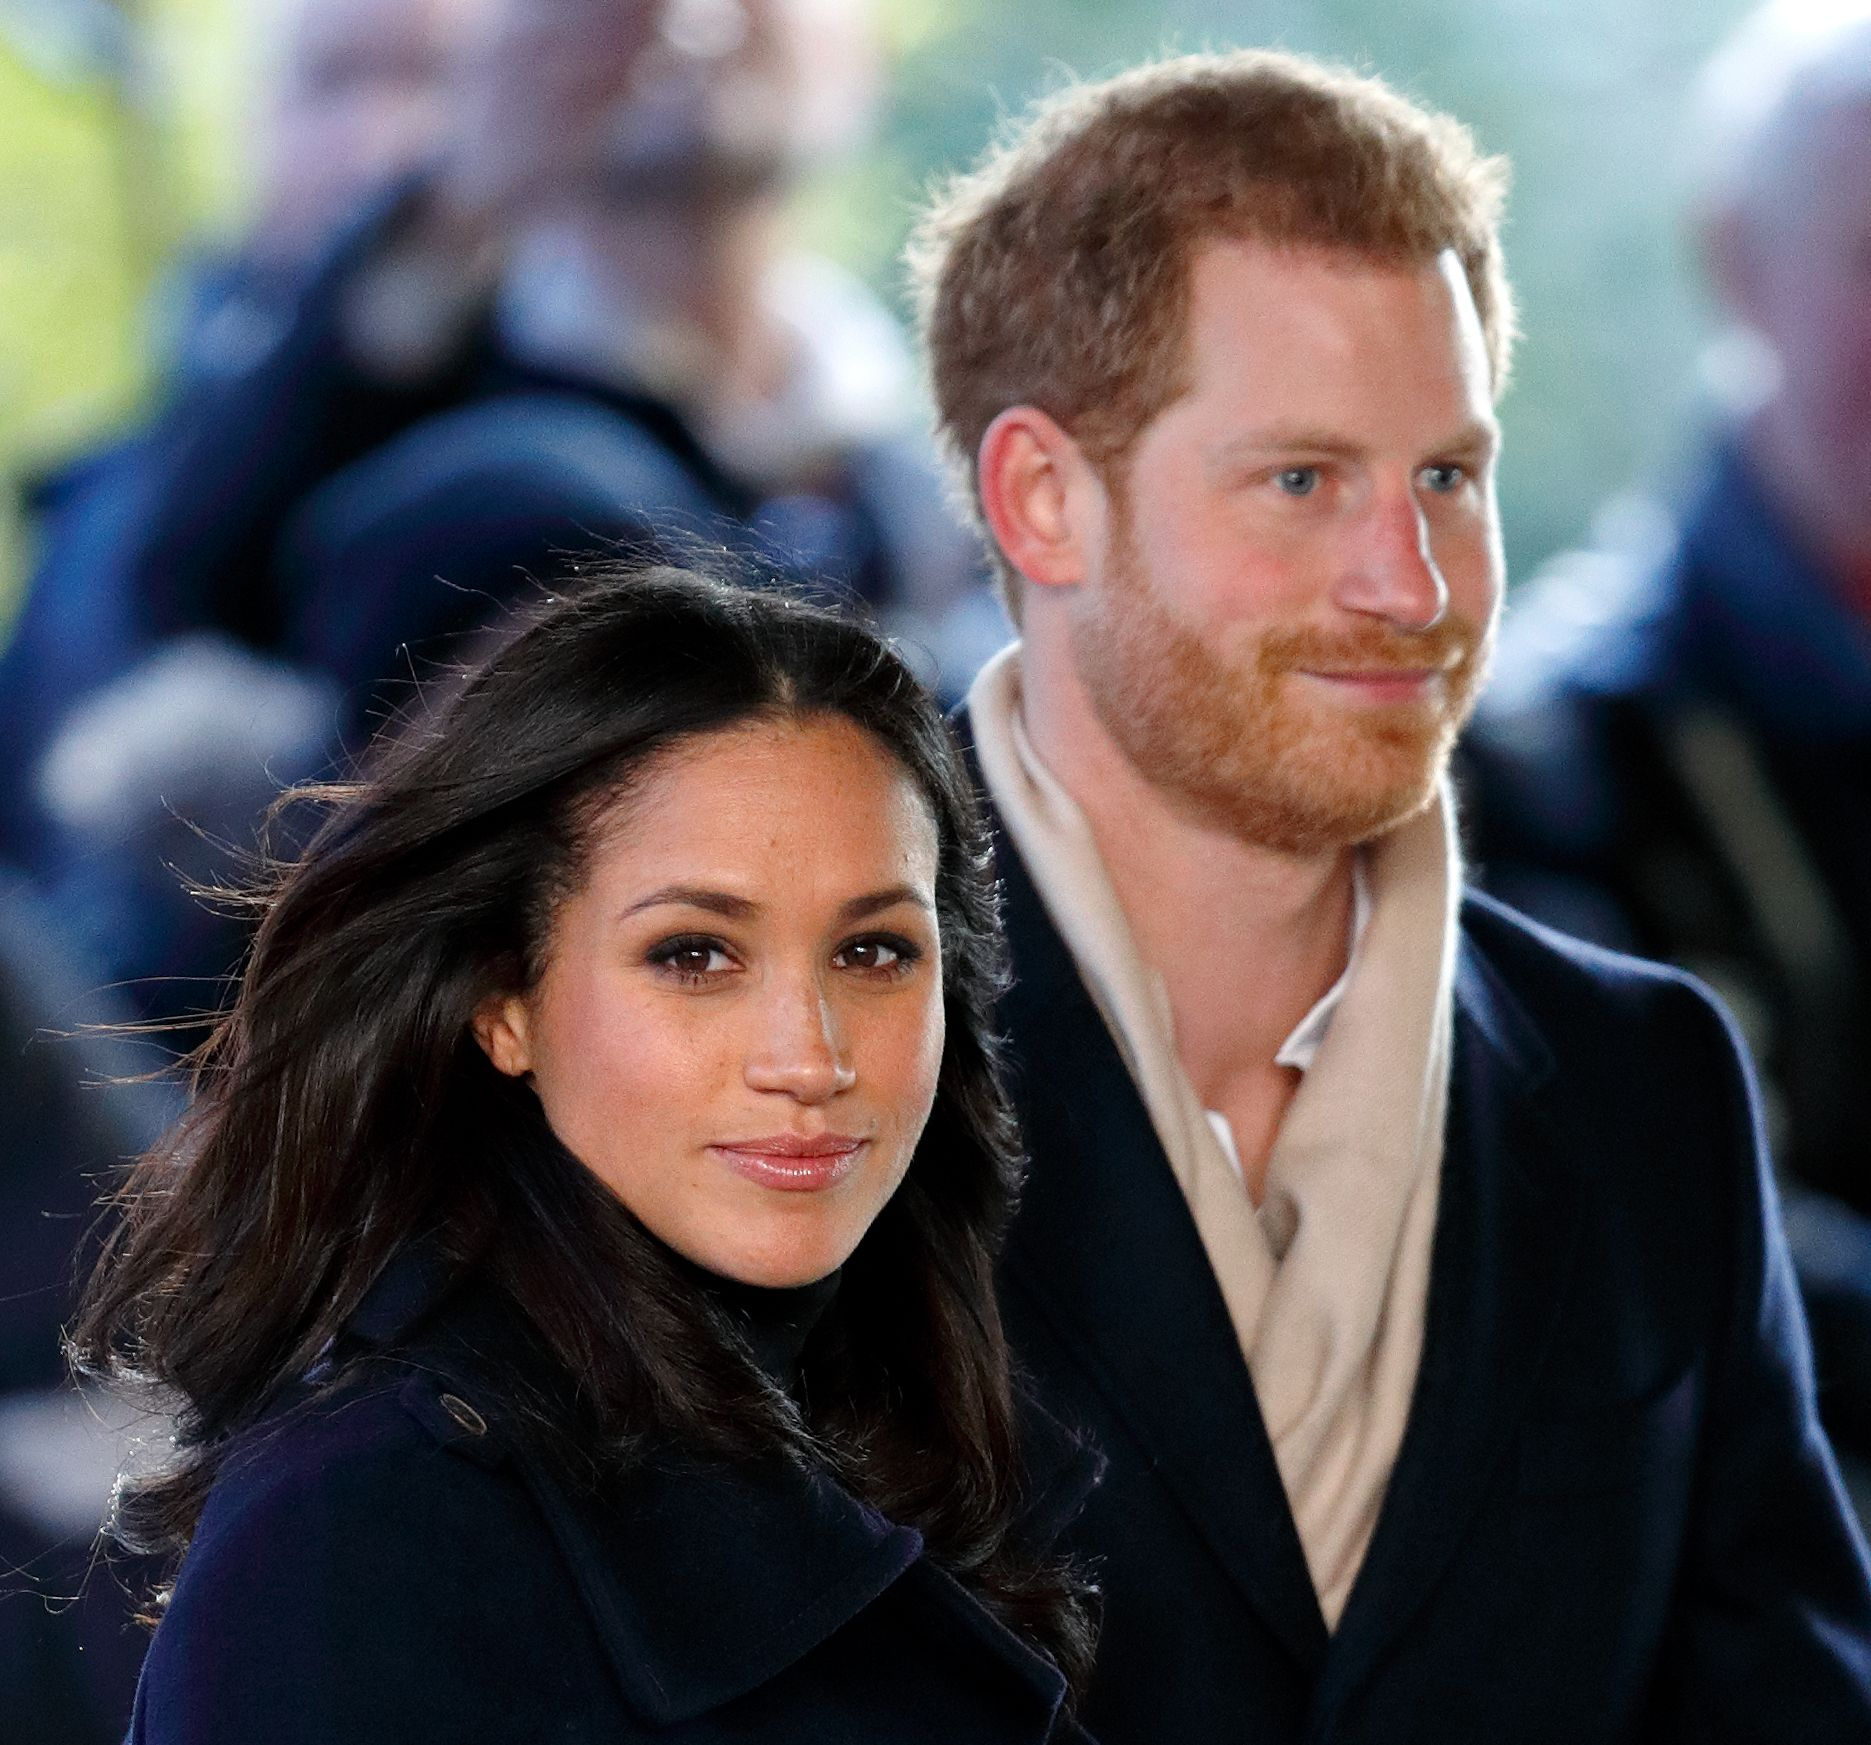 Meghan Markle and Prince Harry during a Terrence Higgins Trust World AIDS Day charity fair on Dec. 1, 2017 in England. | Source: Getty Images